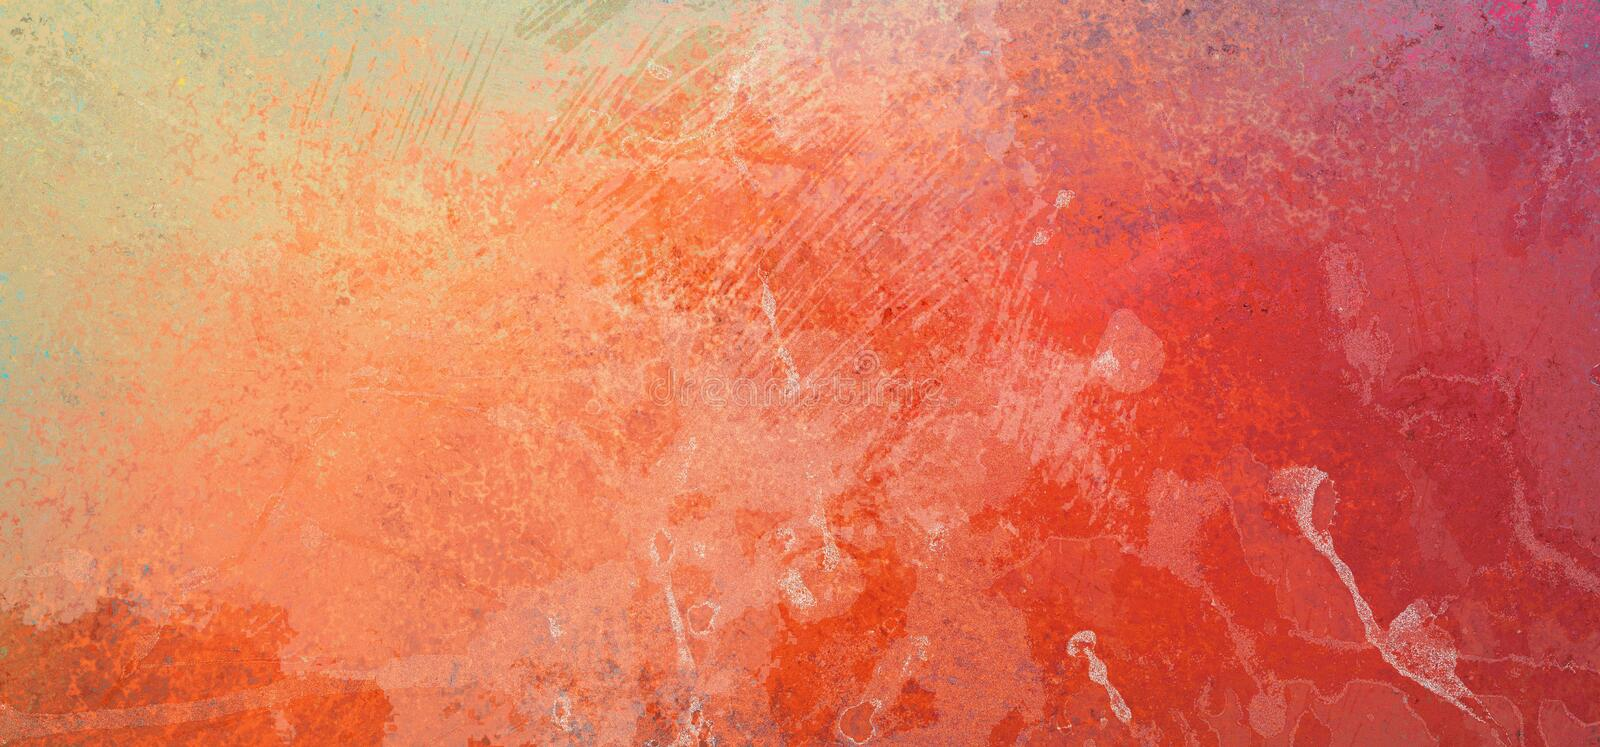 Orange and yellow background with white grunge texture and distressed paint spatter and drips with old scratched brush stroke mark royalty free illustration